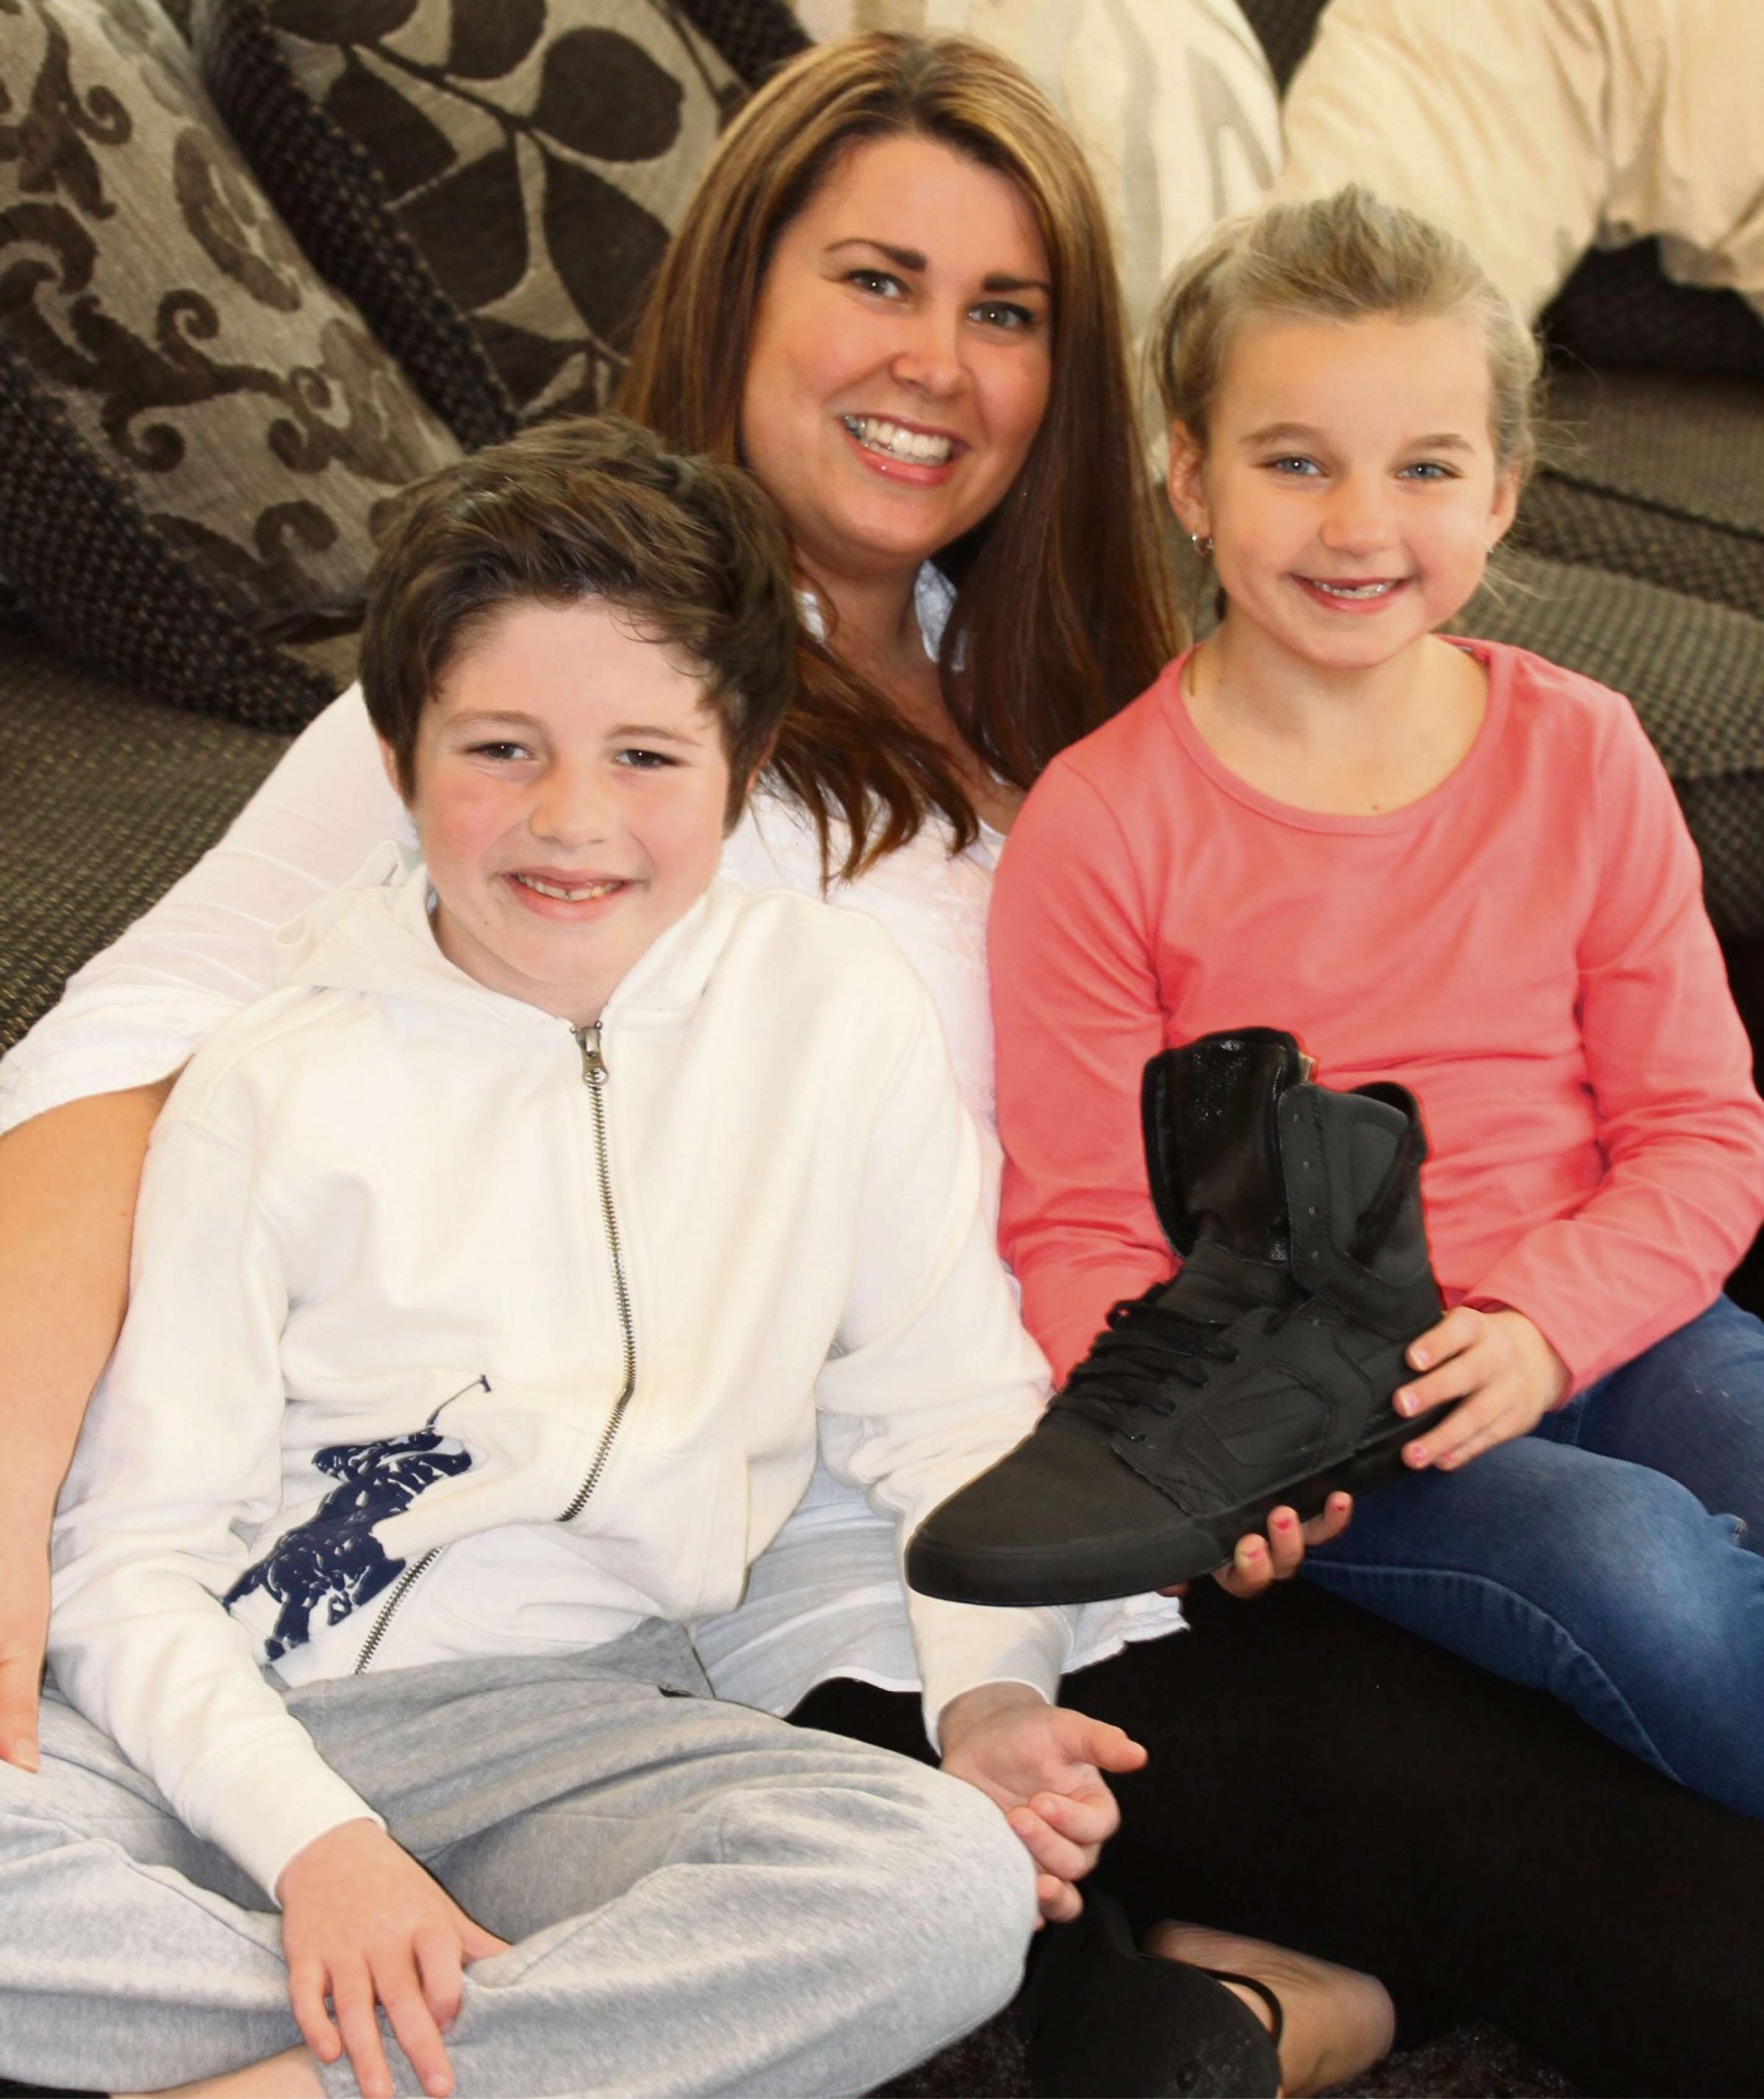 Shoe: Khloe Waite with children Ralphie and Beau Waite with Bieber's shoe